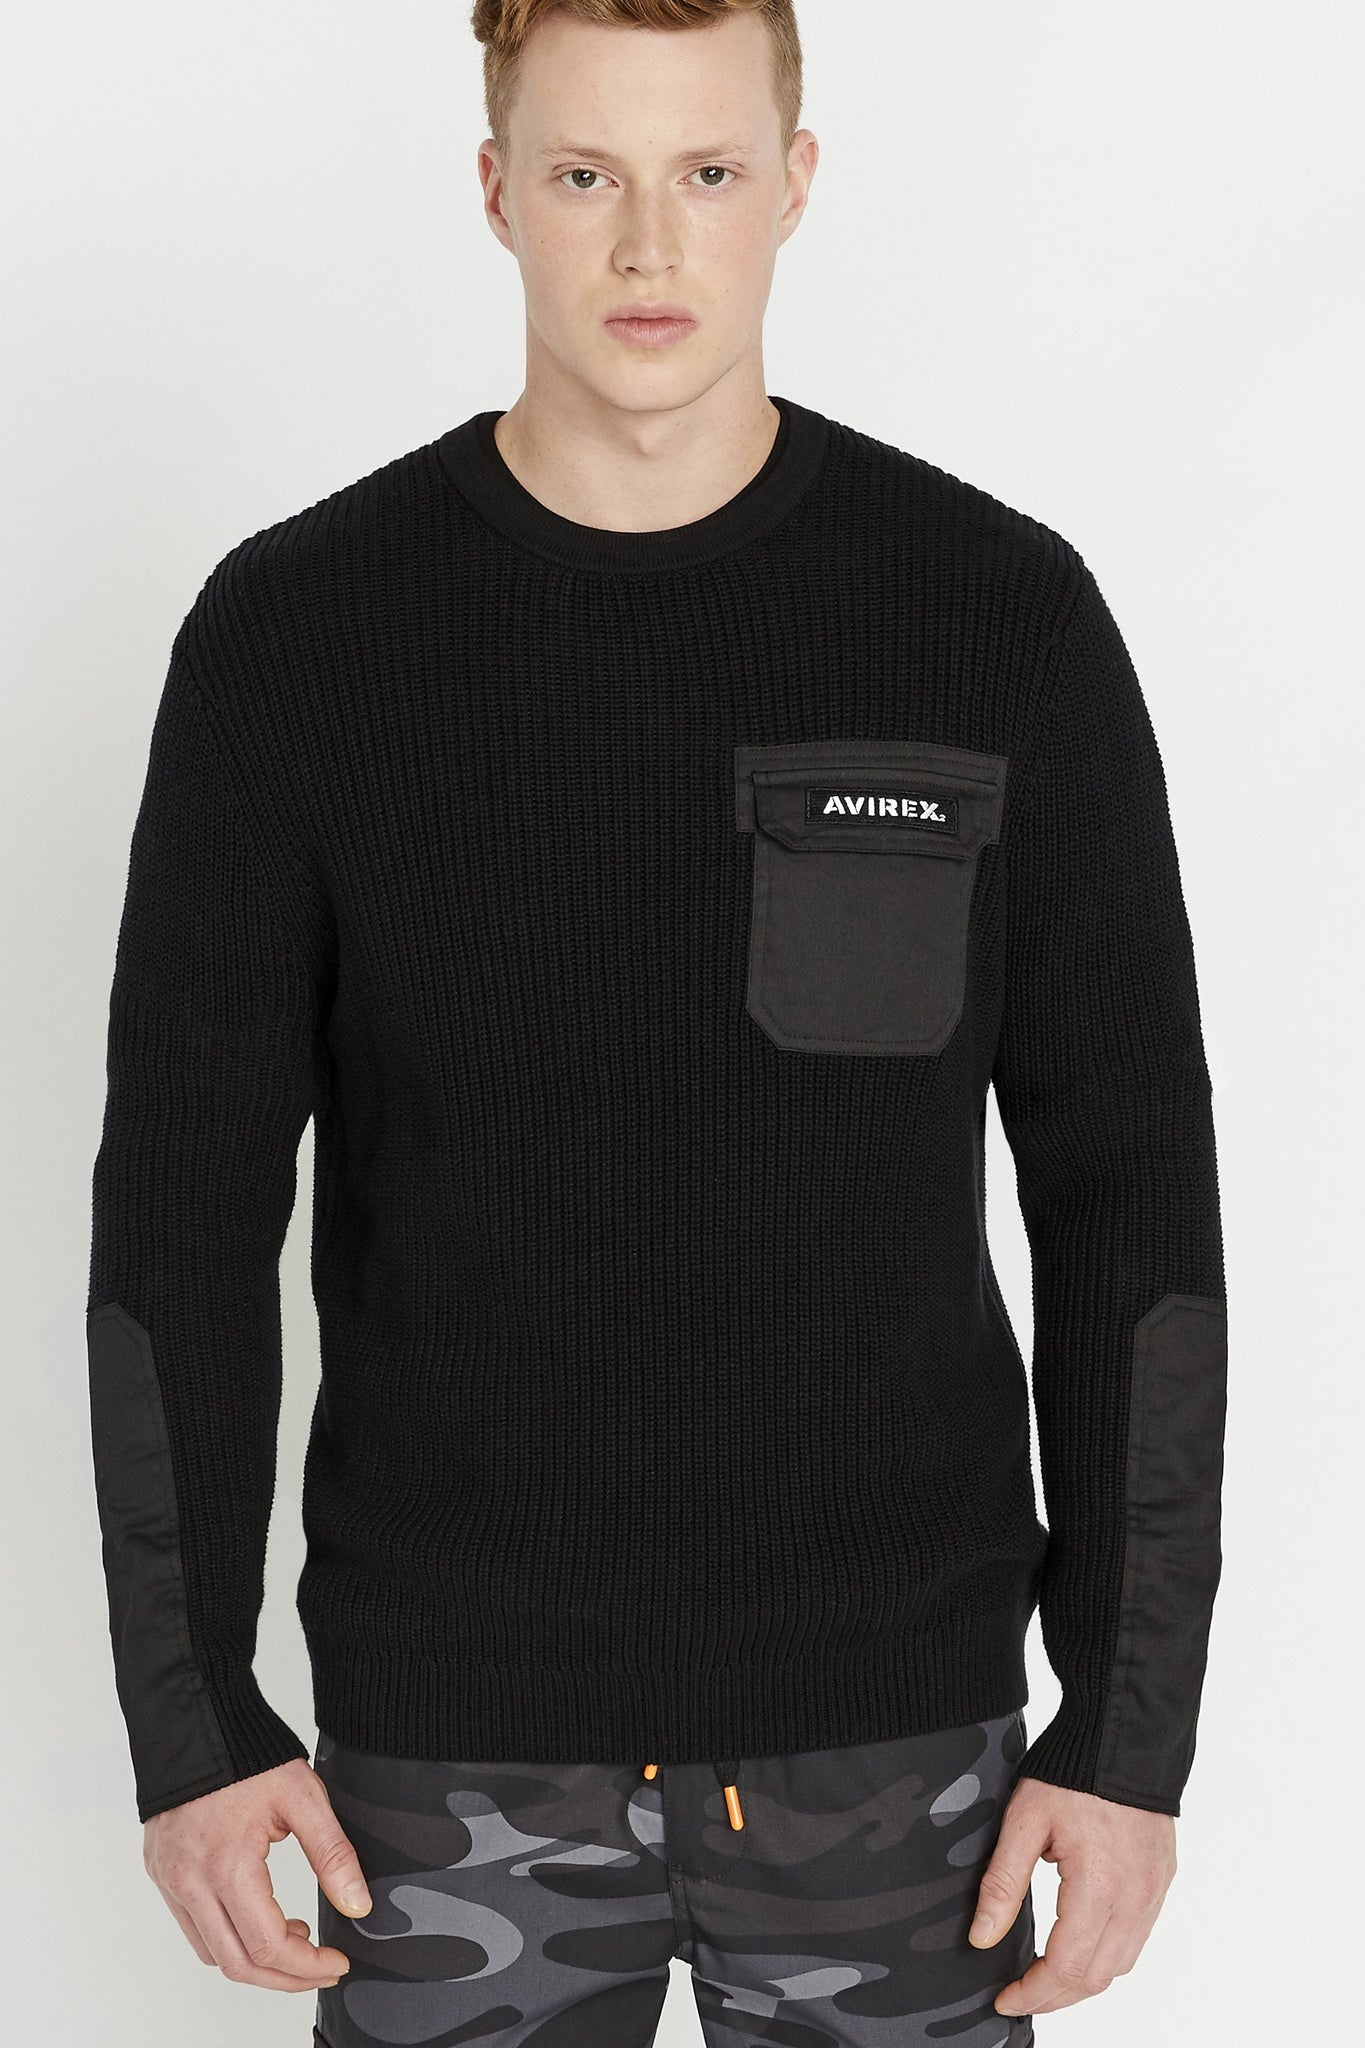 Men wearing a black long sleeve crew neck sweater with pocket and patch on the chest and patches on sleeves